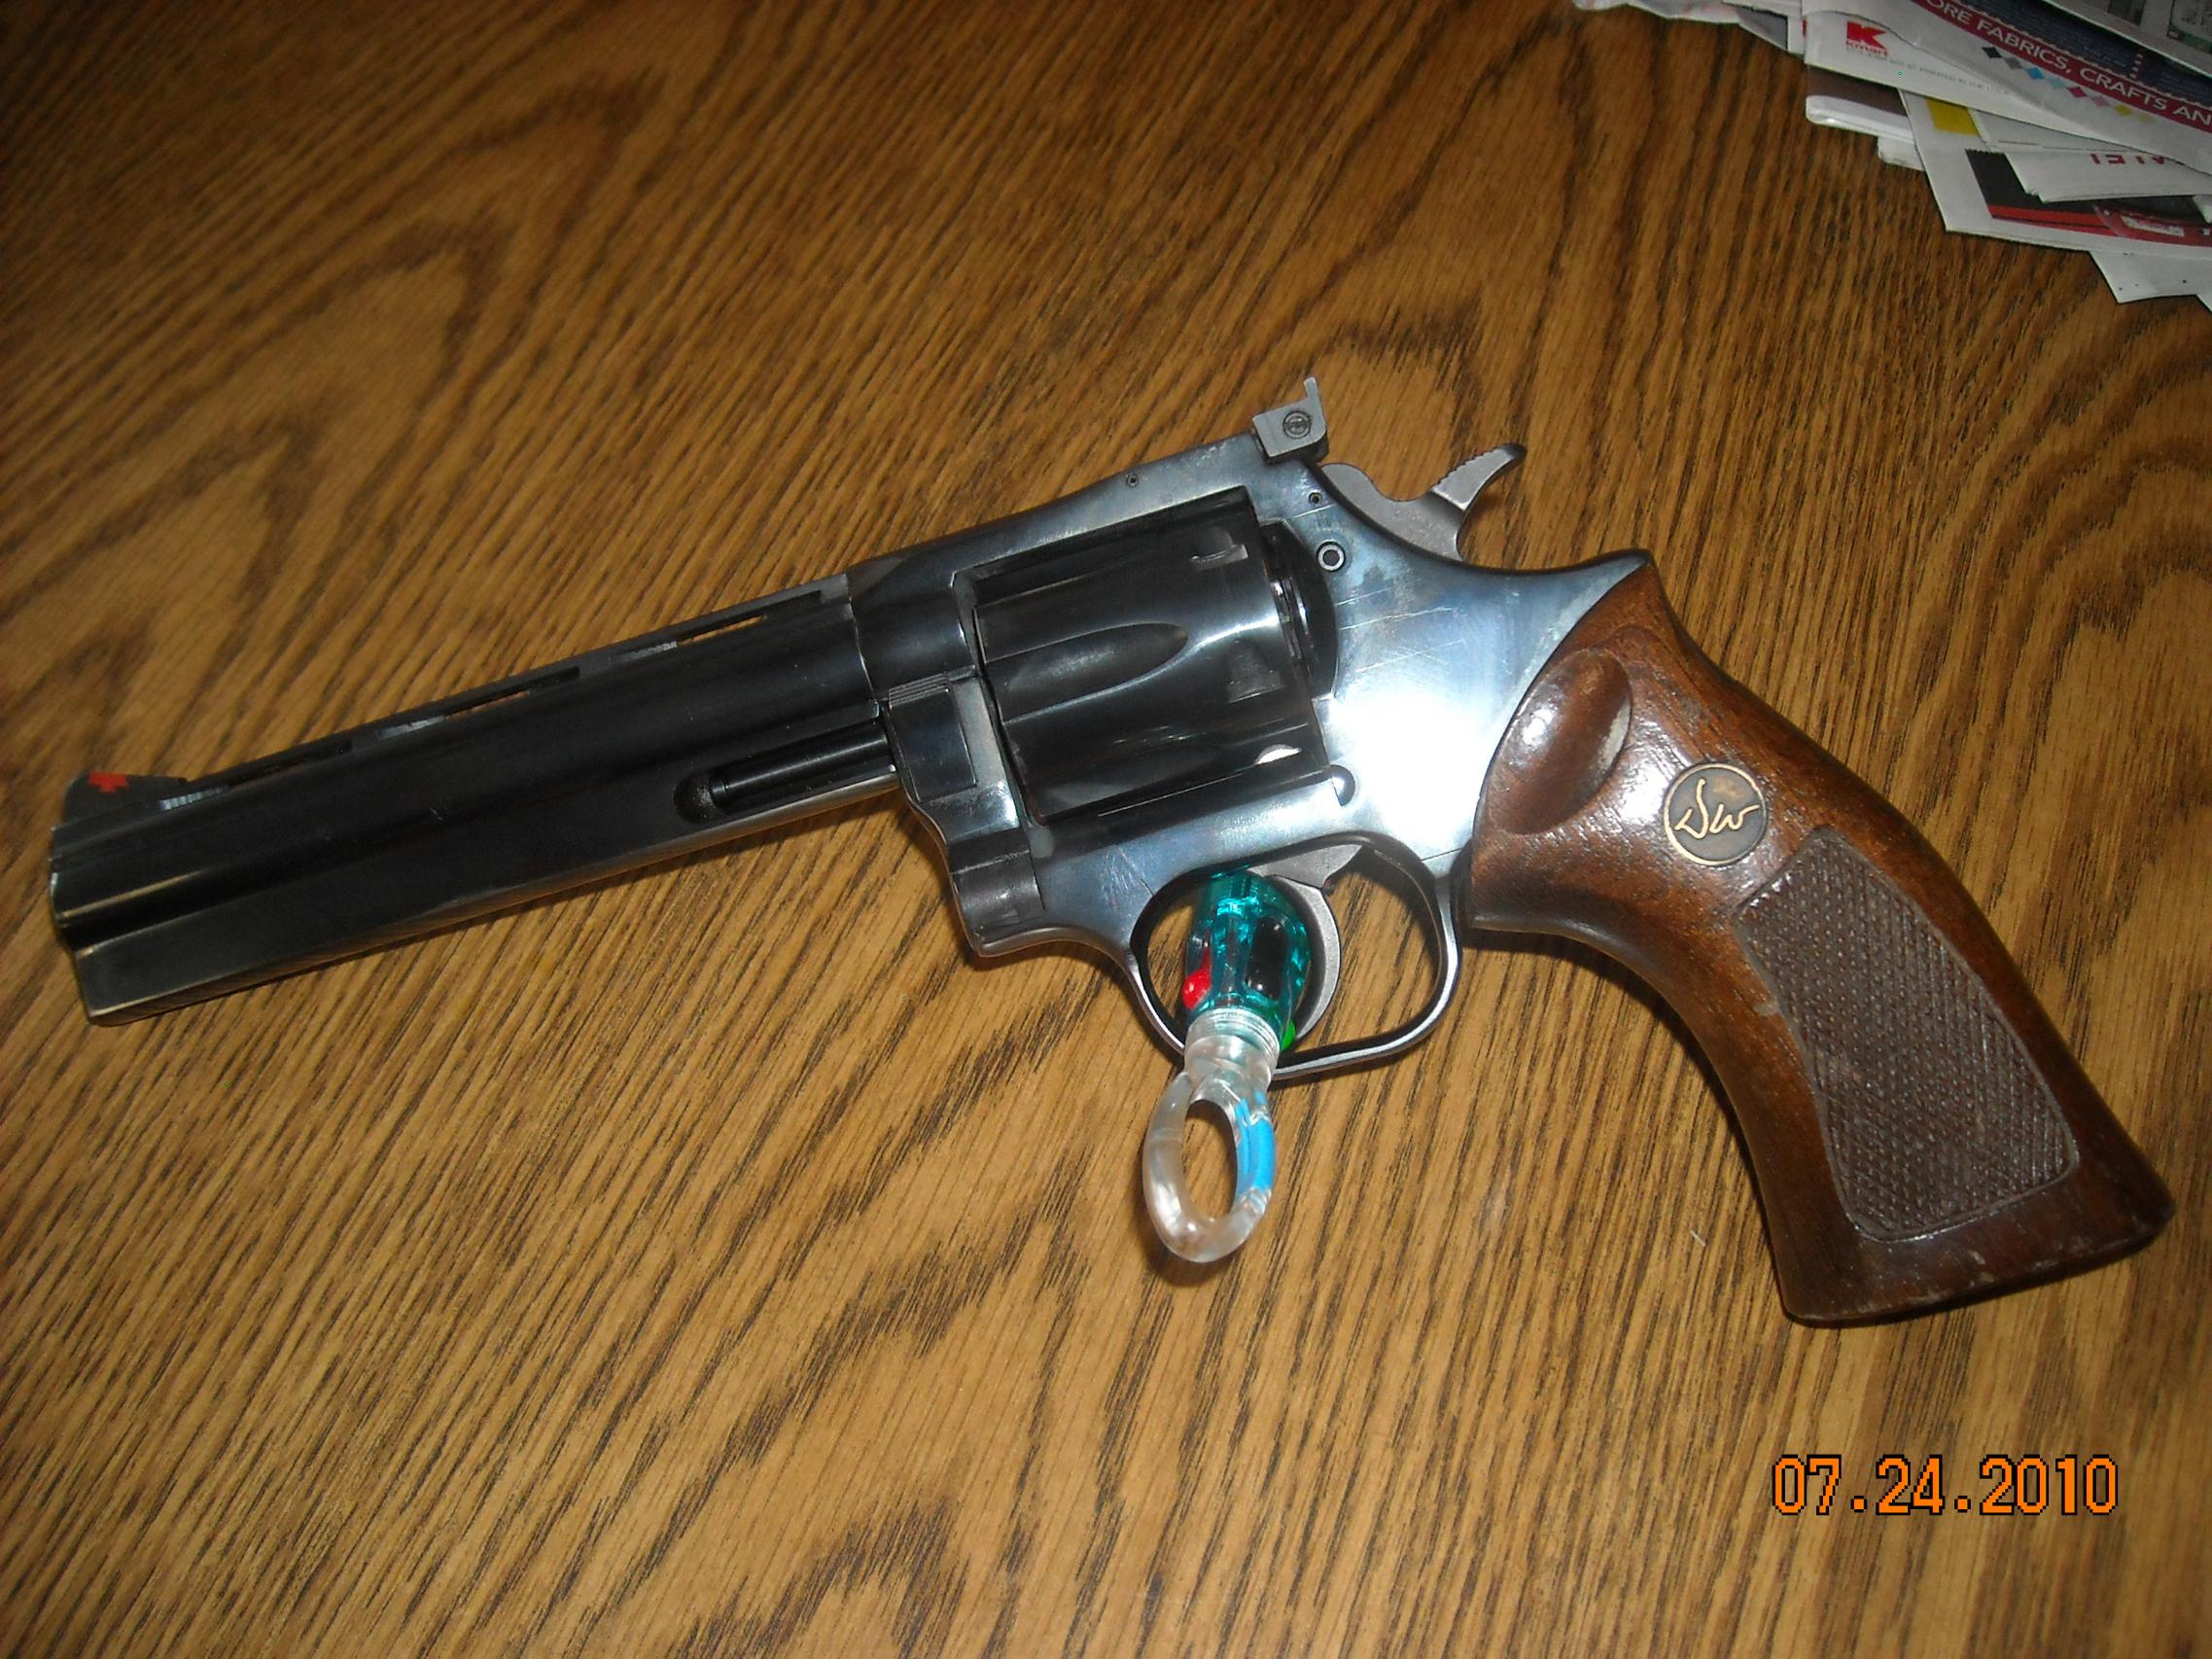 Interested in getting more revolvers-dscn1204.jpg